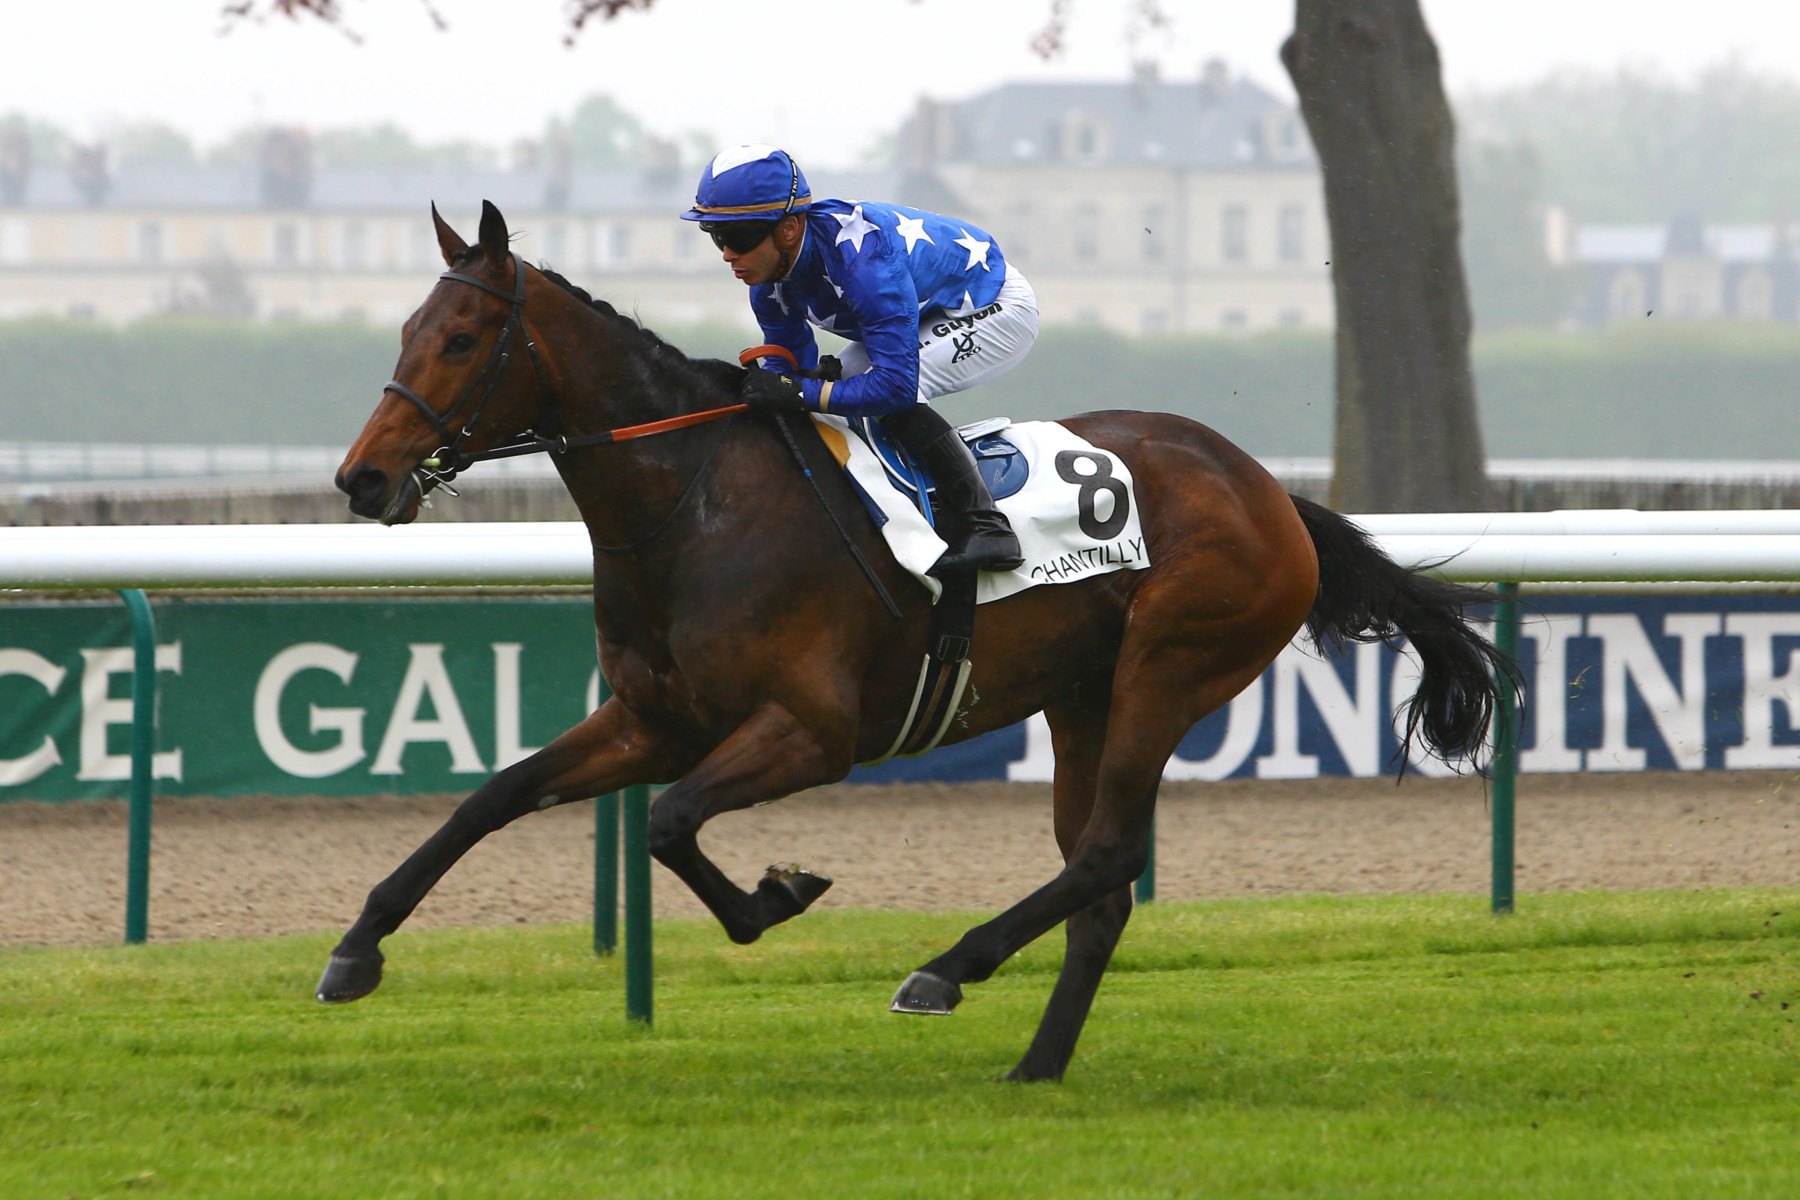 PRIX DU CONNÉTABLE (MAIDEN) - Called to the Bar est attendu au niveau black type